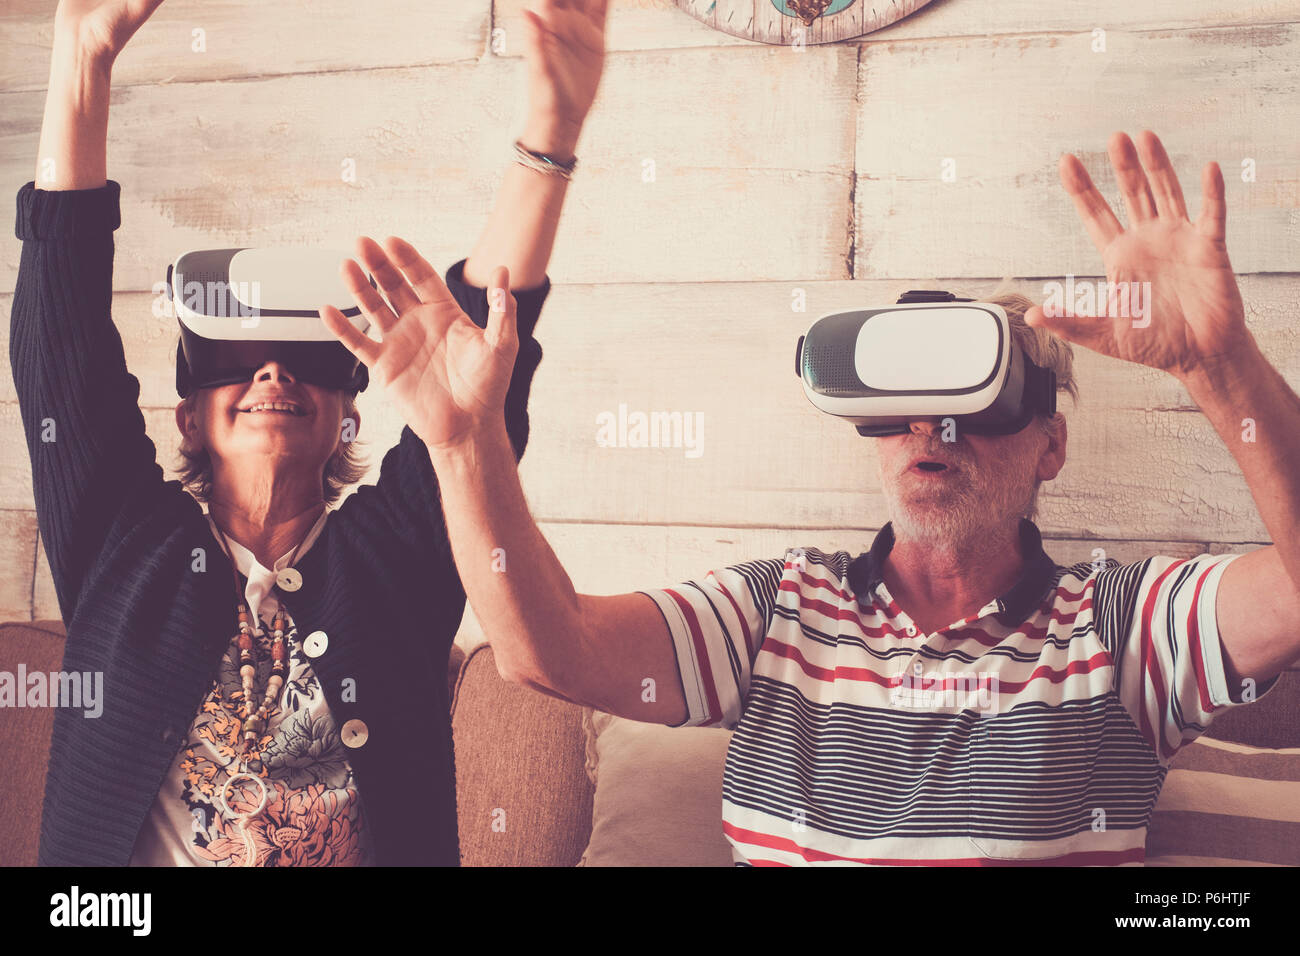 couple of senior adult caucasian enjoy technology with goggled headset and play in virtual realuty together having fun at home. trying new experience  - Stock Image